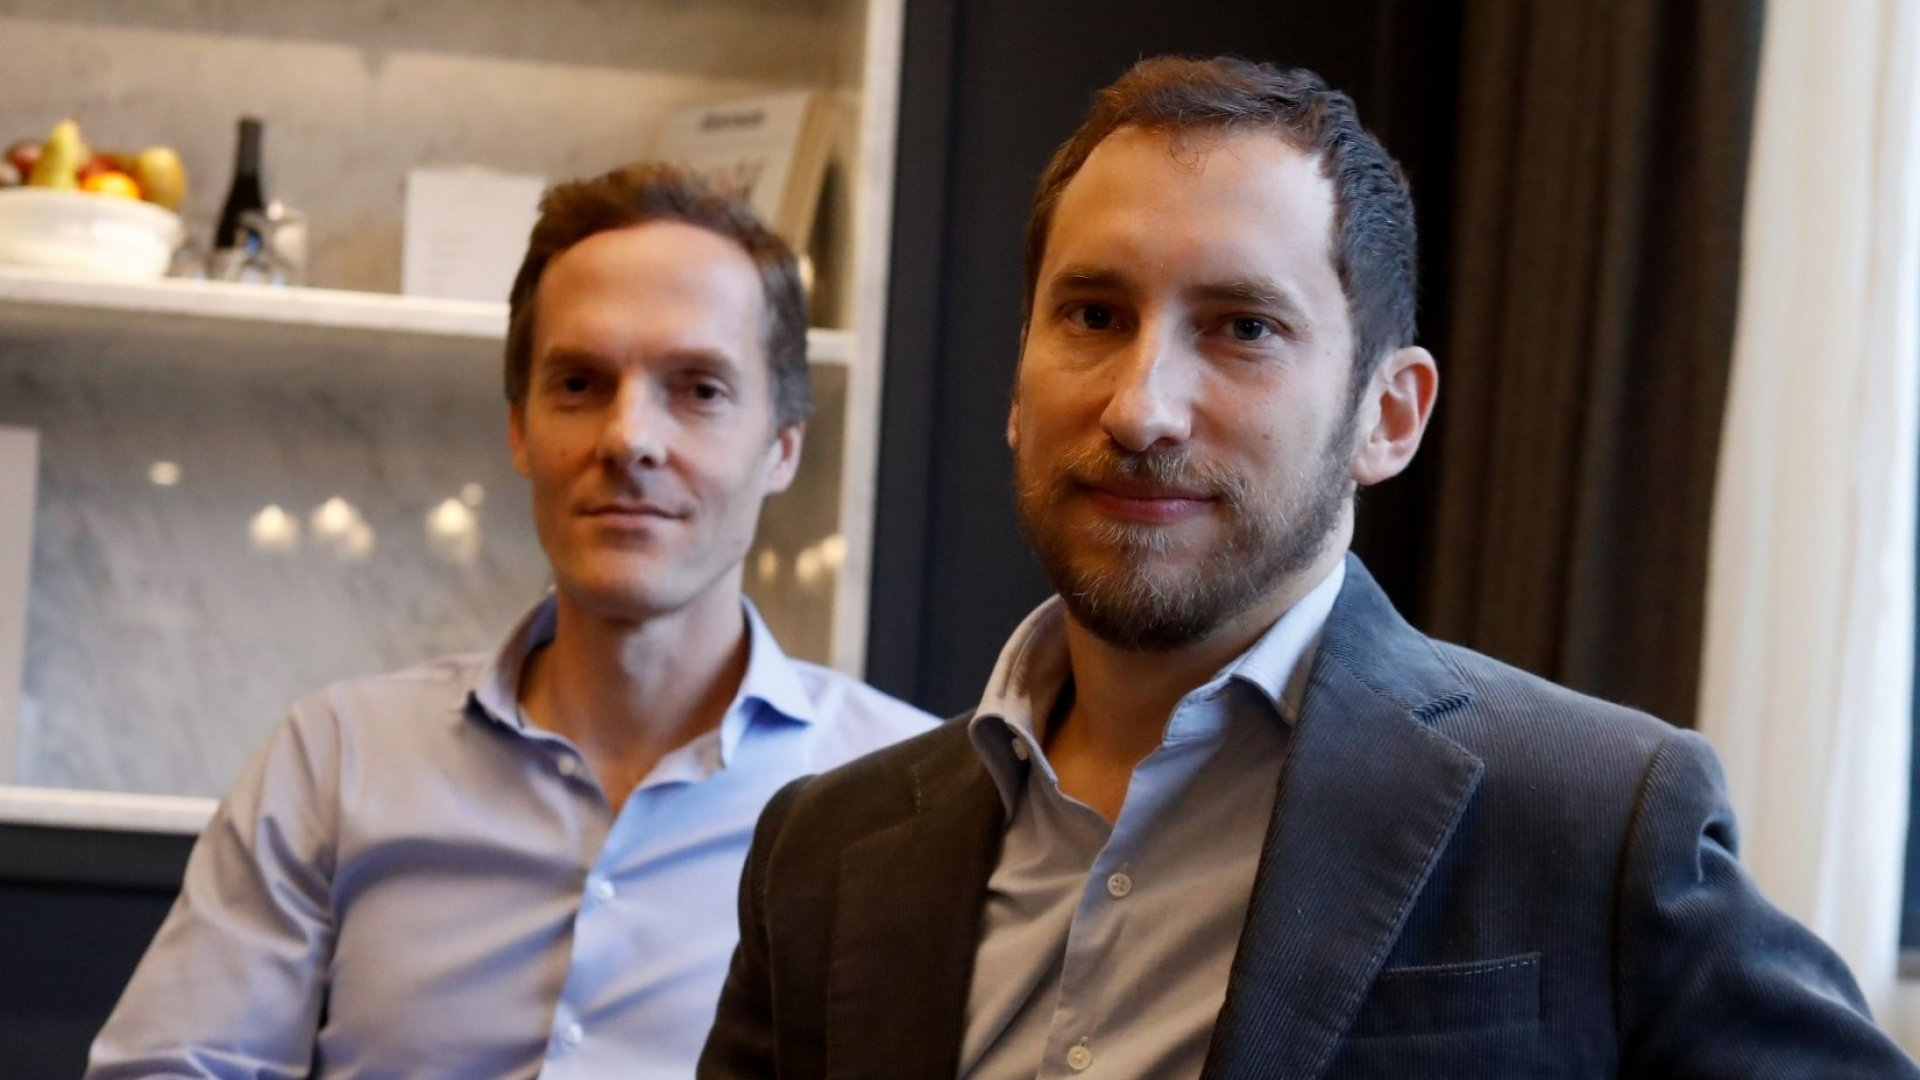 Adam Bowen (L) and James Monsees, Juul's co-founders. Photo by Francois Guillot, AFP